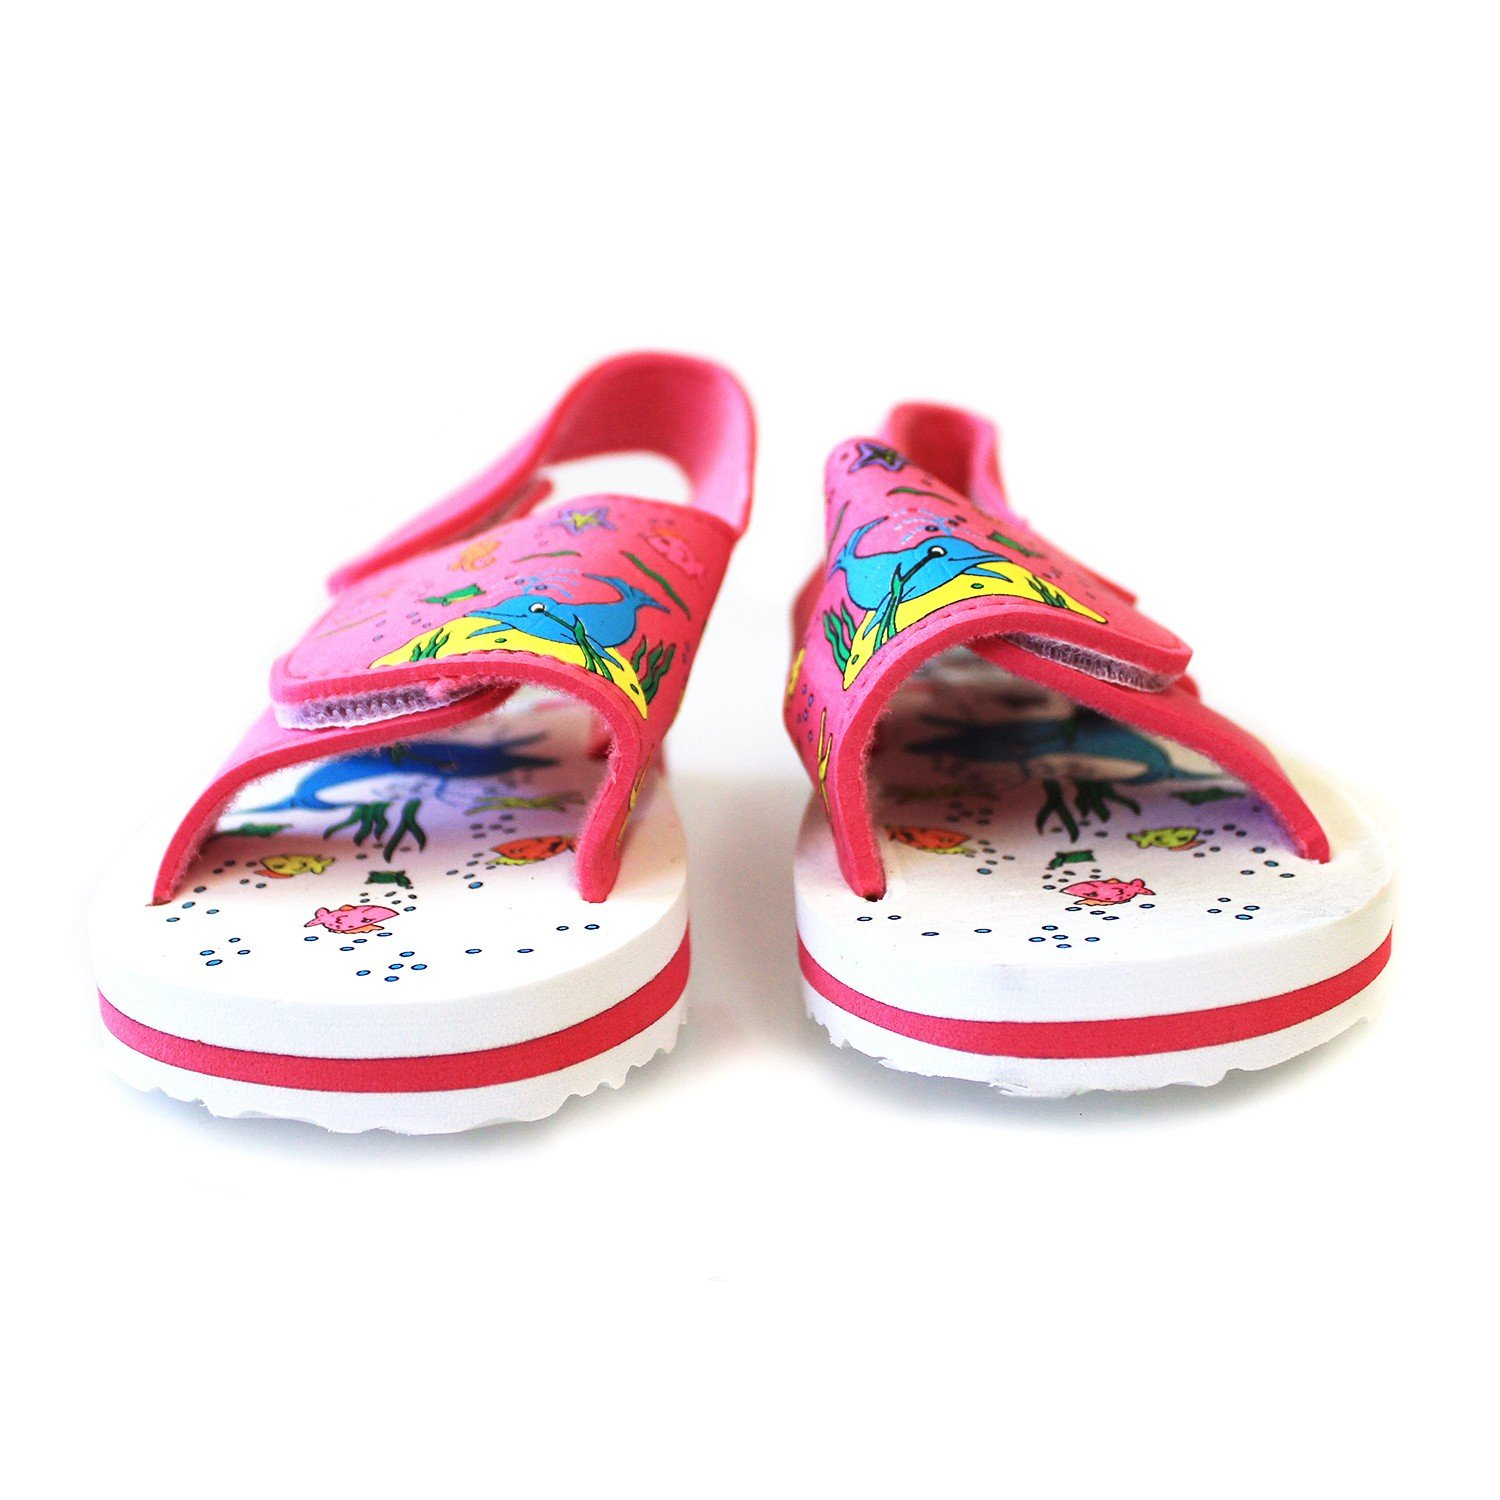 Hawaiian Print Ocean Dolphin Sea Horses Star Fish Girl Sandals with Fastners in Pink